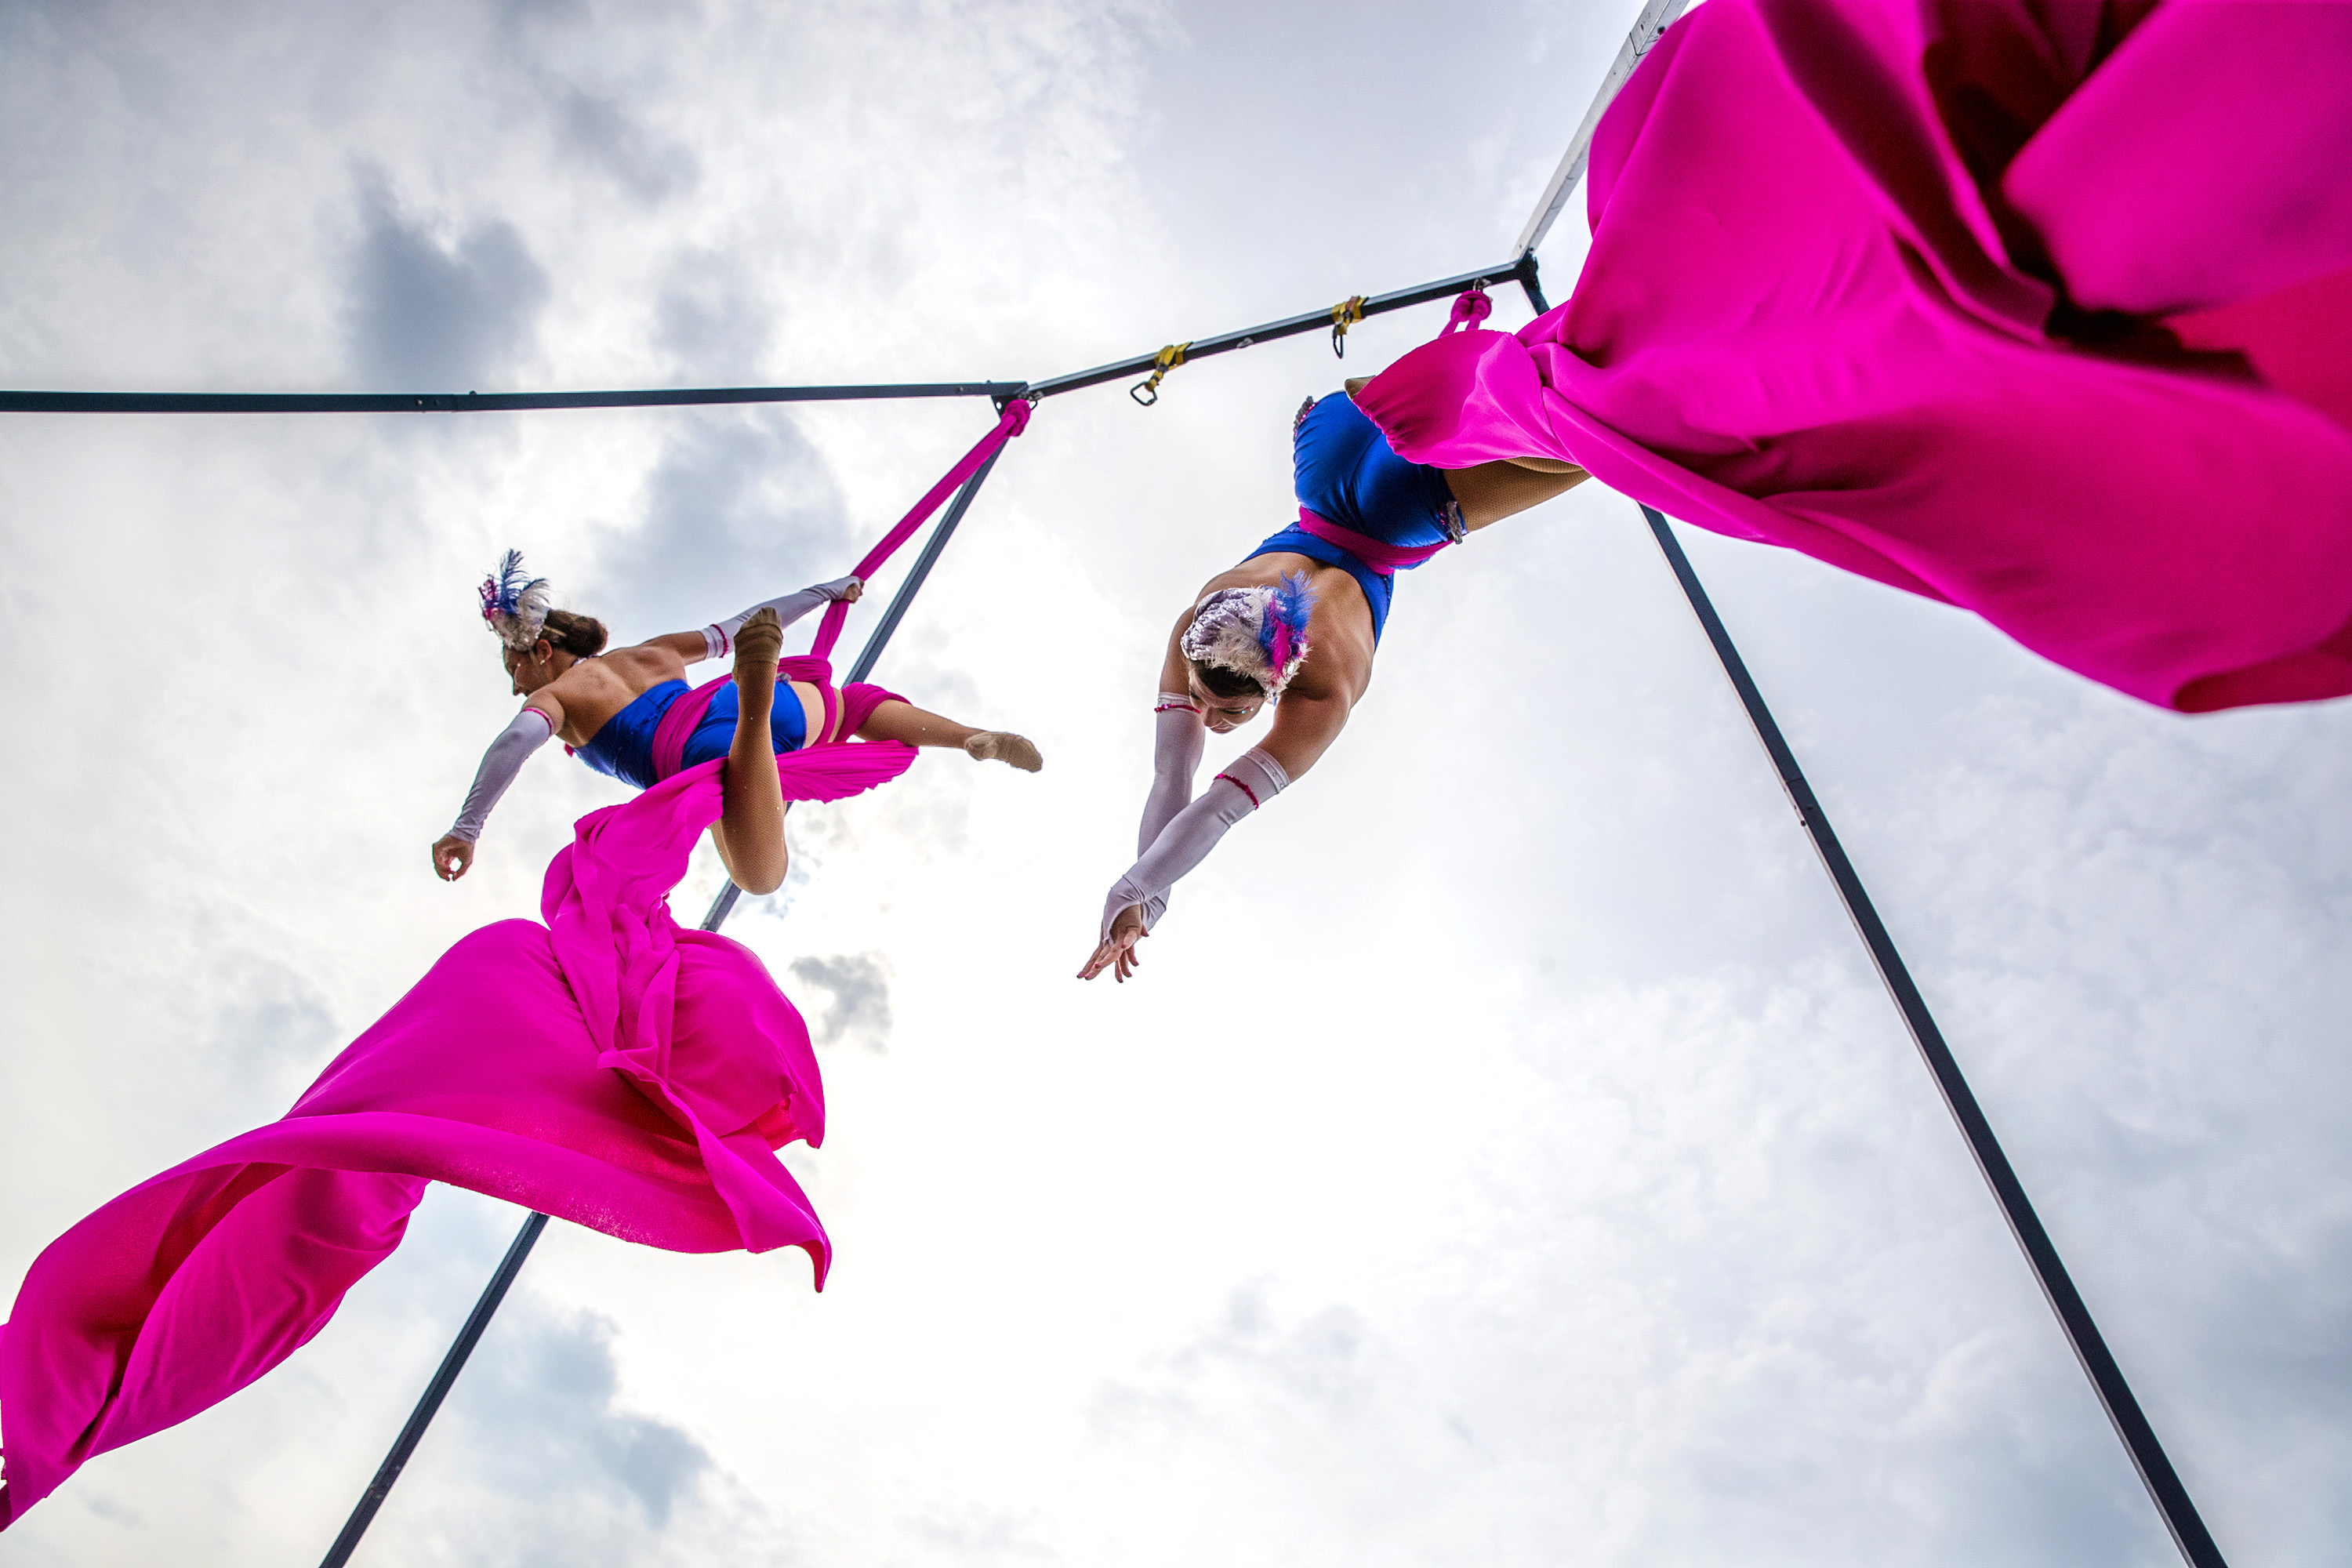 The Silver Starlets launch Laya Healthcare's City Spectacular. The all-female acrobatic duo bring their stunning performance to the festival in Cork.